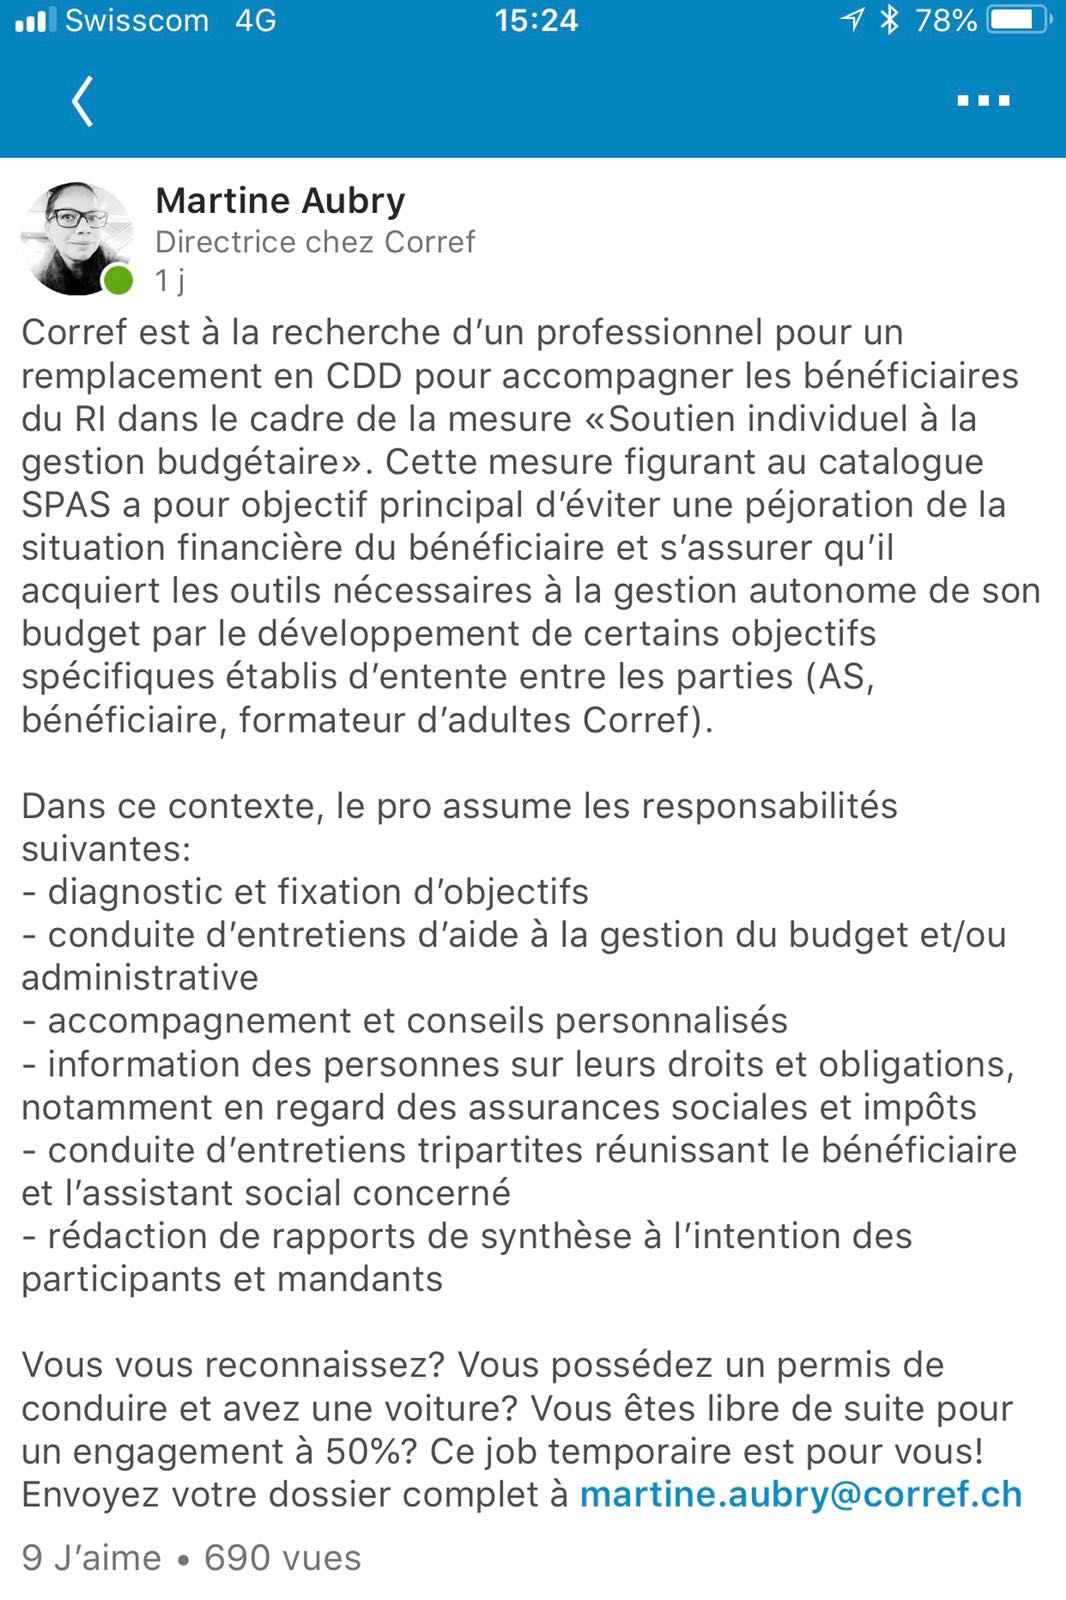 corref_emploi_gestion-budgetaire-et-administrative